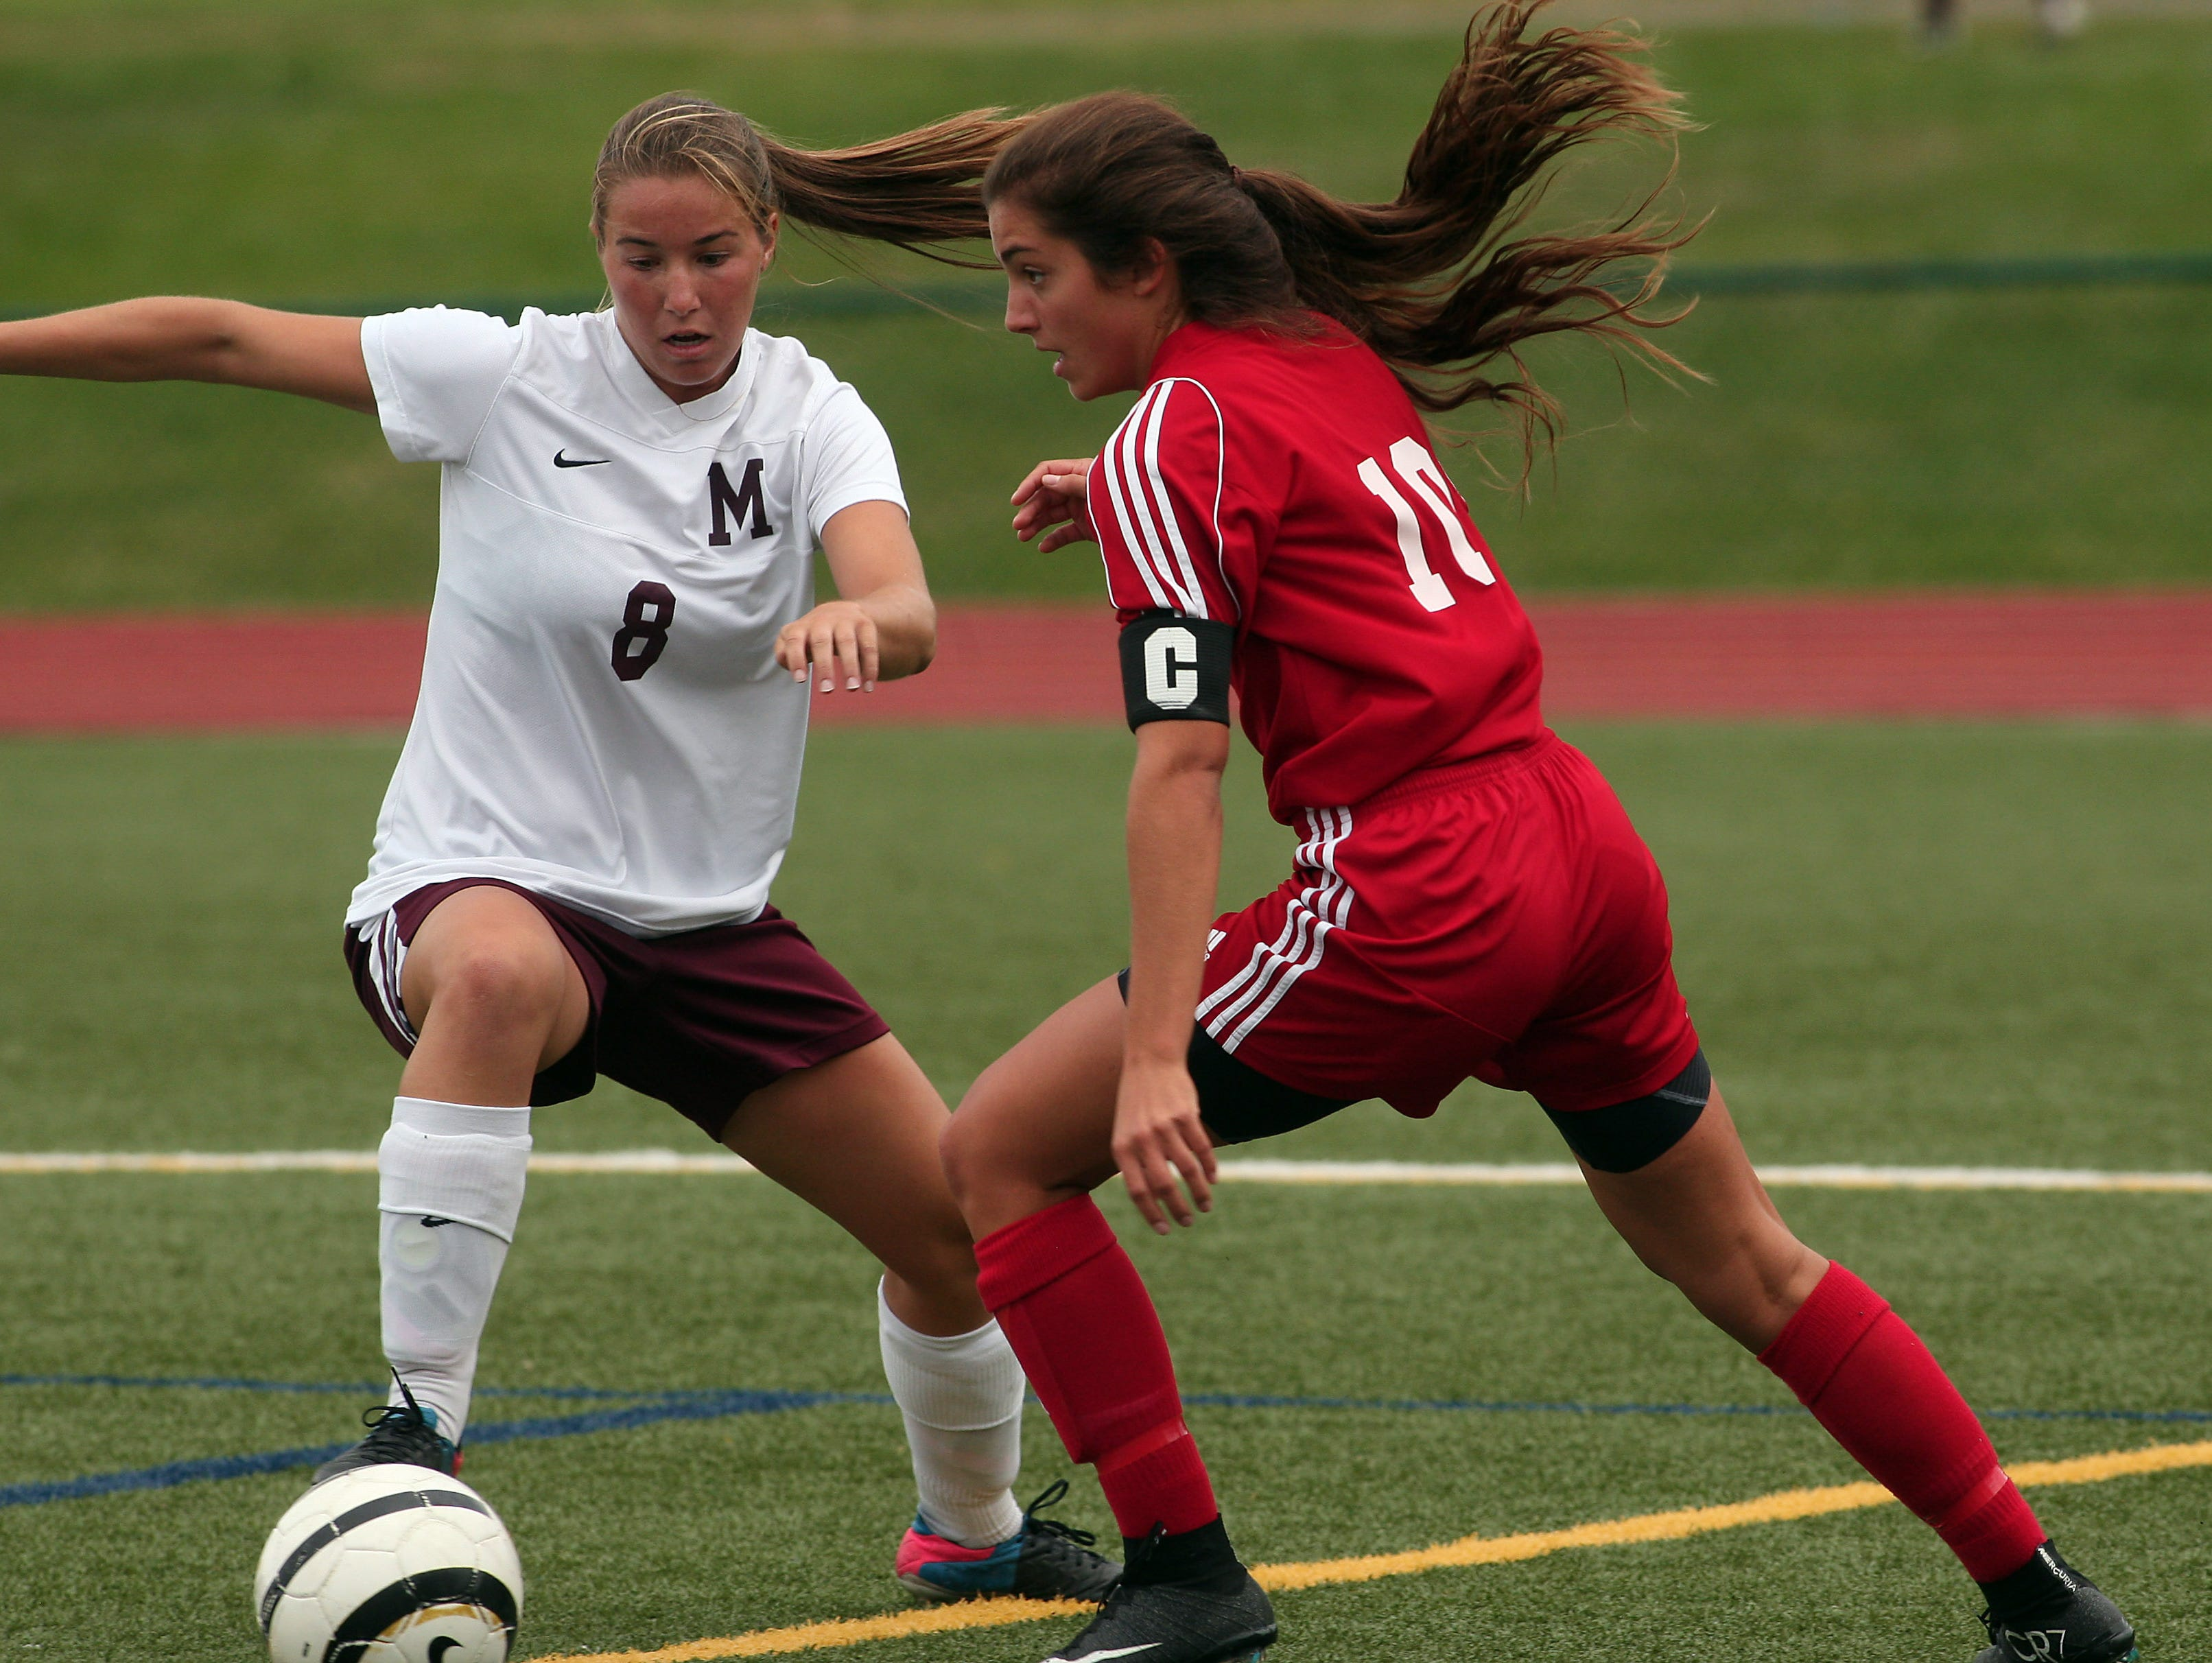 Madison's Megan Dyer, l, and Whippany Park's Gina DelloRusso battle for the ball during their girls soccer matchup. September 22, 2015, Madison, NJ.